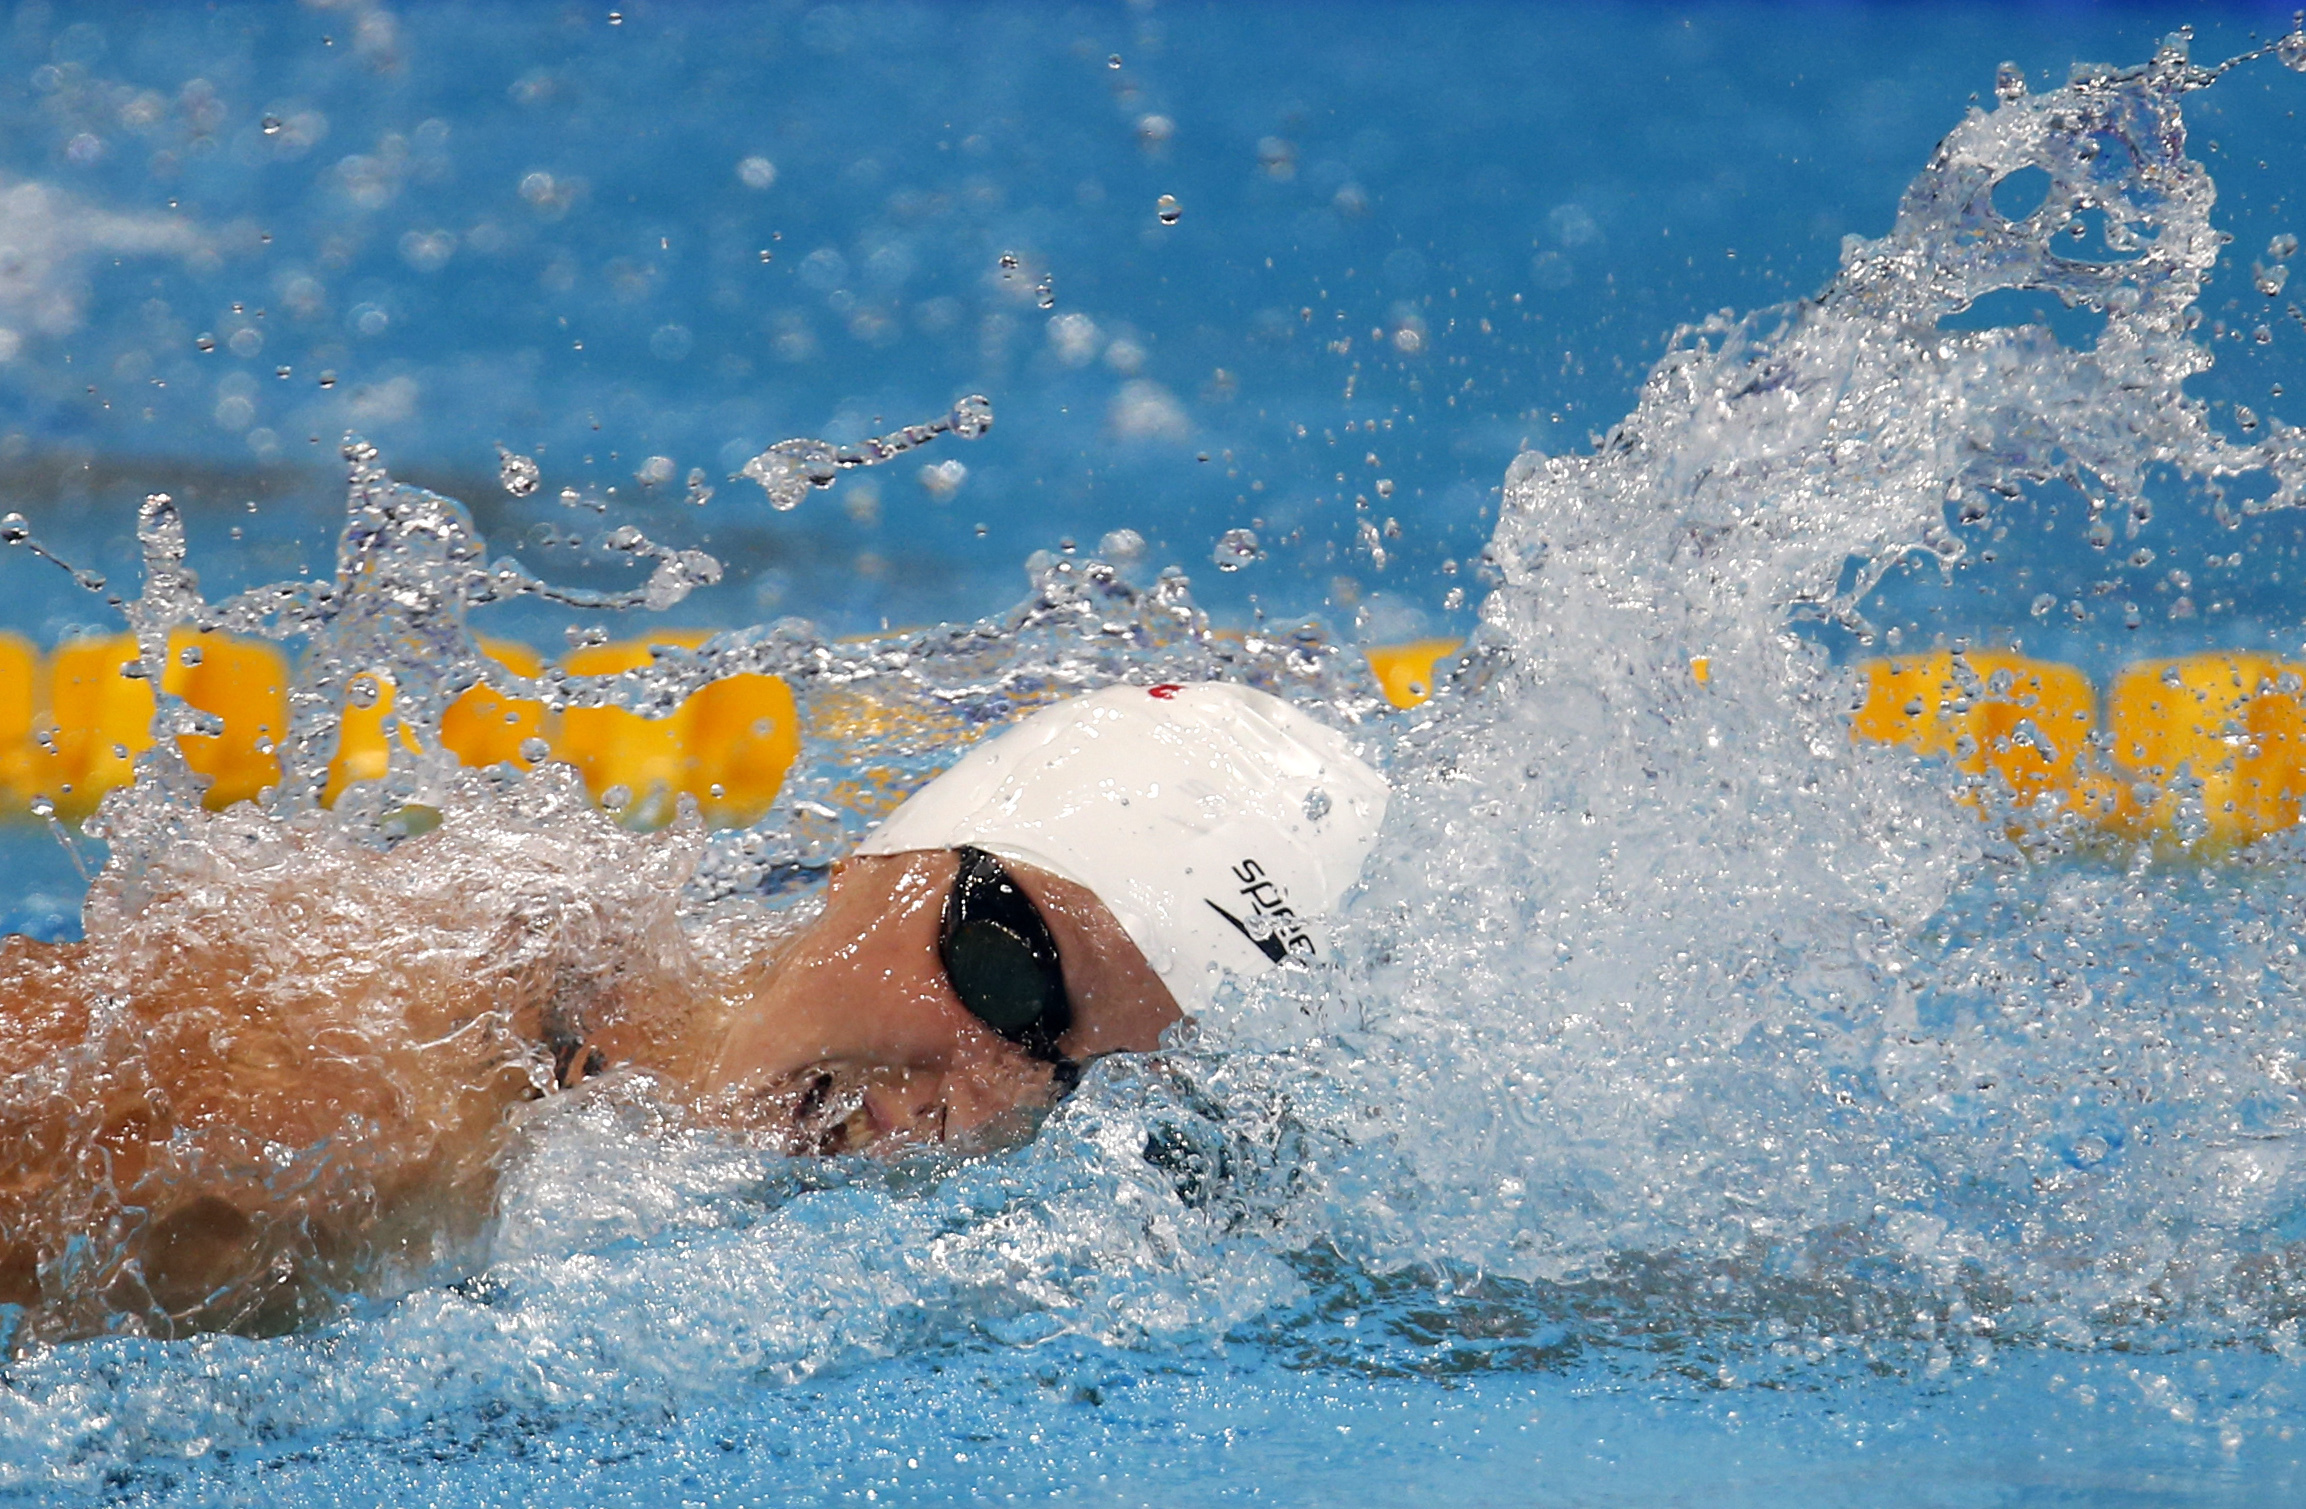 United States' Katie Ledecky competes in a women's 200-meter freestyle heat during the swimming competitions of the World Aquatics Championships in Budapest, Hungary, Tuesday, July 25, 2017. (AP Photo/Darko Bandic)